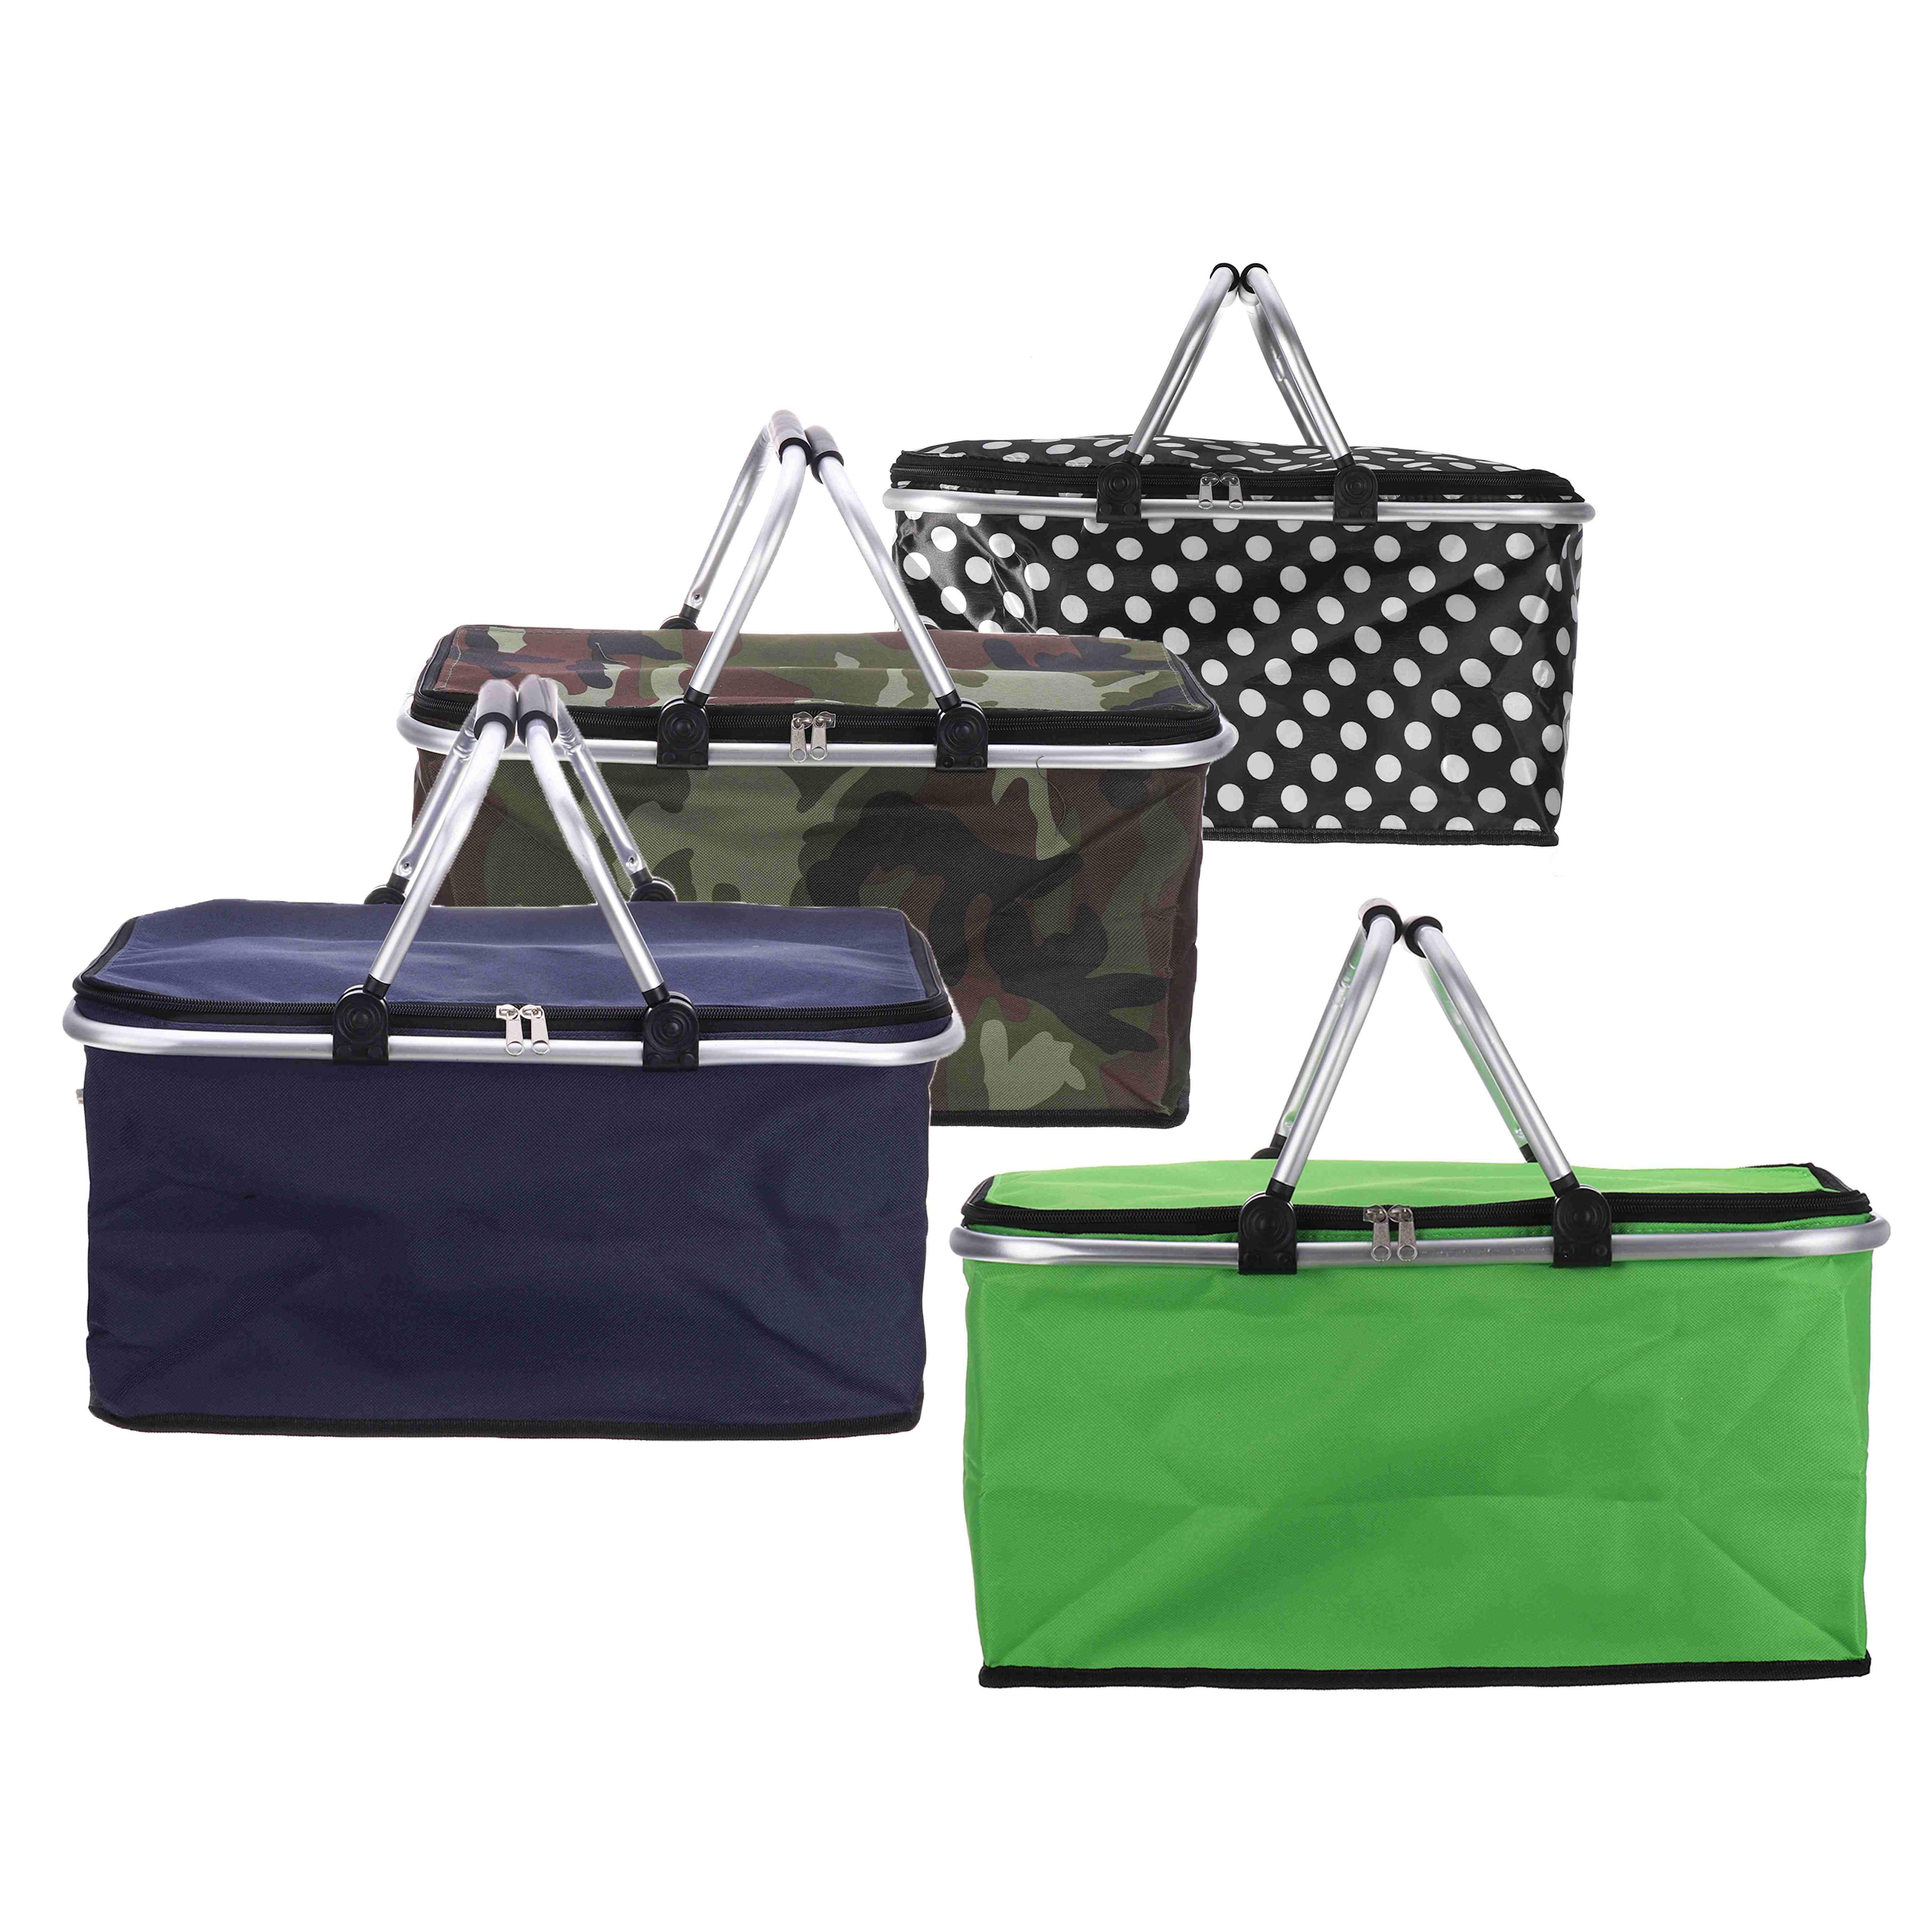 30L Foldable Thermal Insulated Bag Cooler Bags Pizza Food Pizza Delivery Picnic Storage Holder Functional Bag Storage Basket